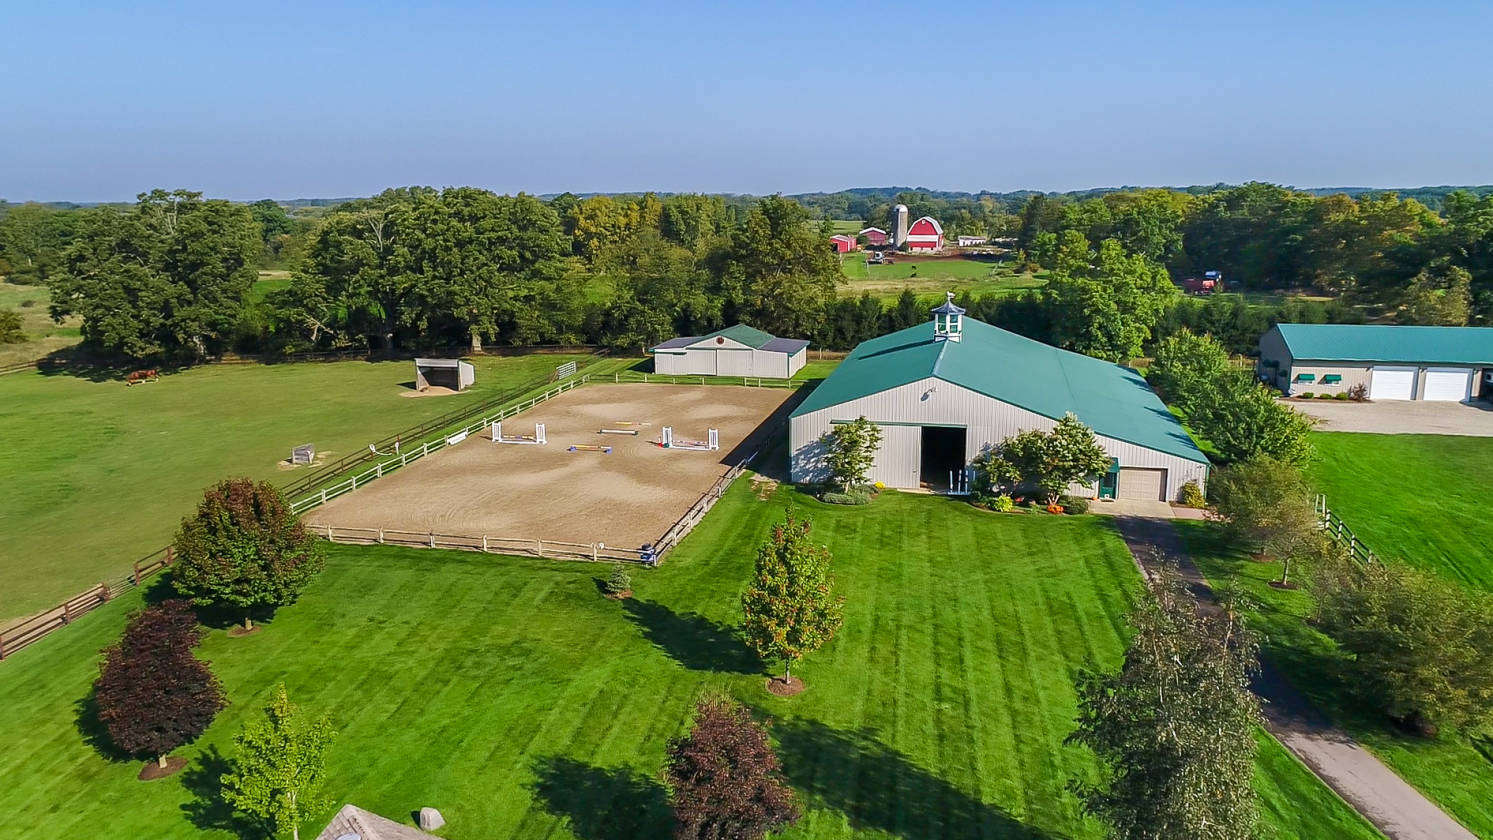 20 acre equestrian estate in chelsea michigan luxury home rh horseproperties net